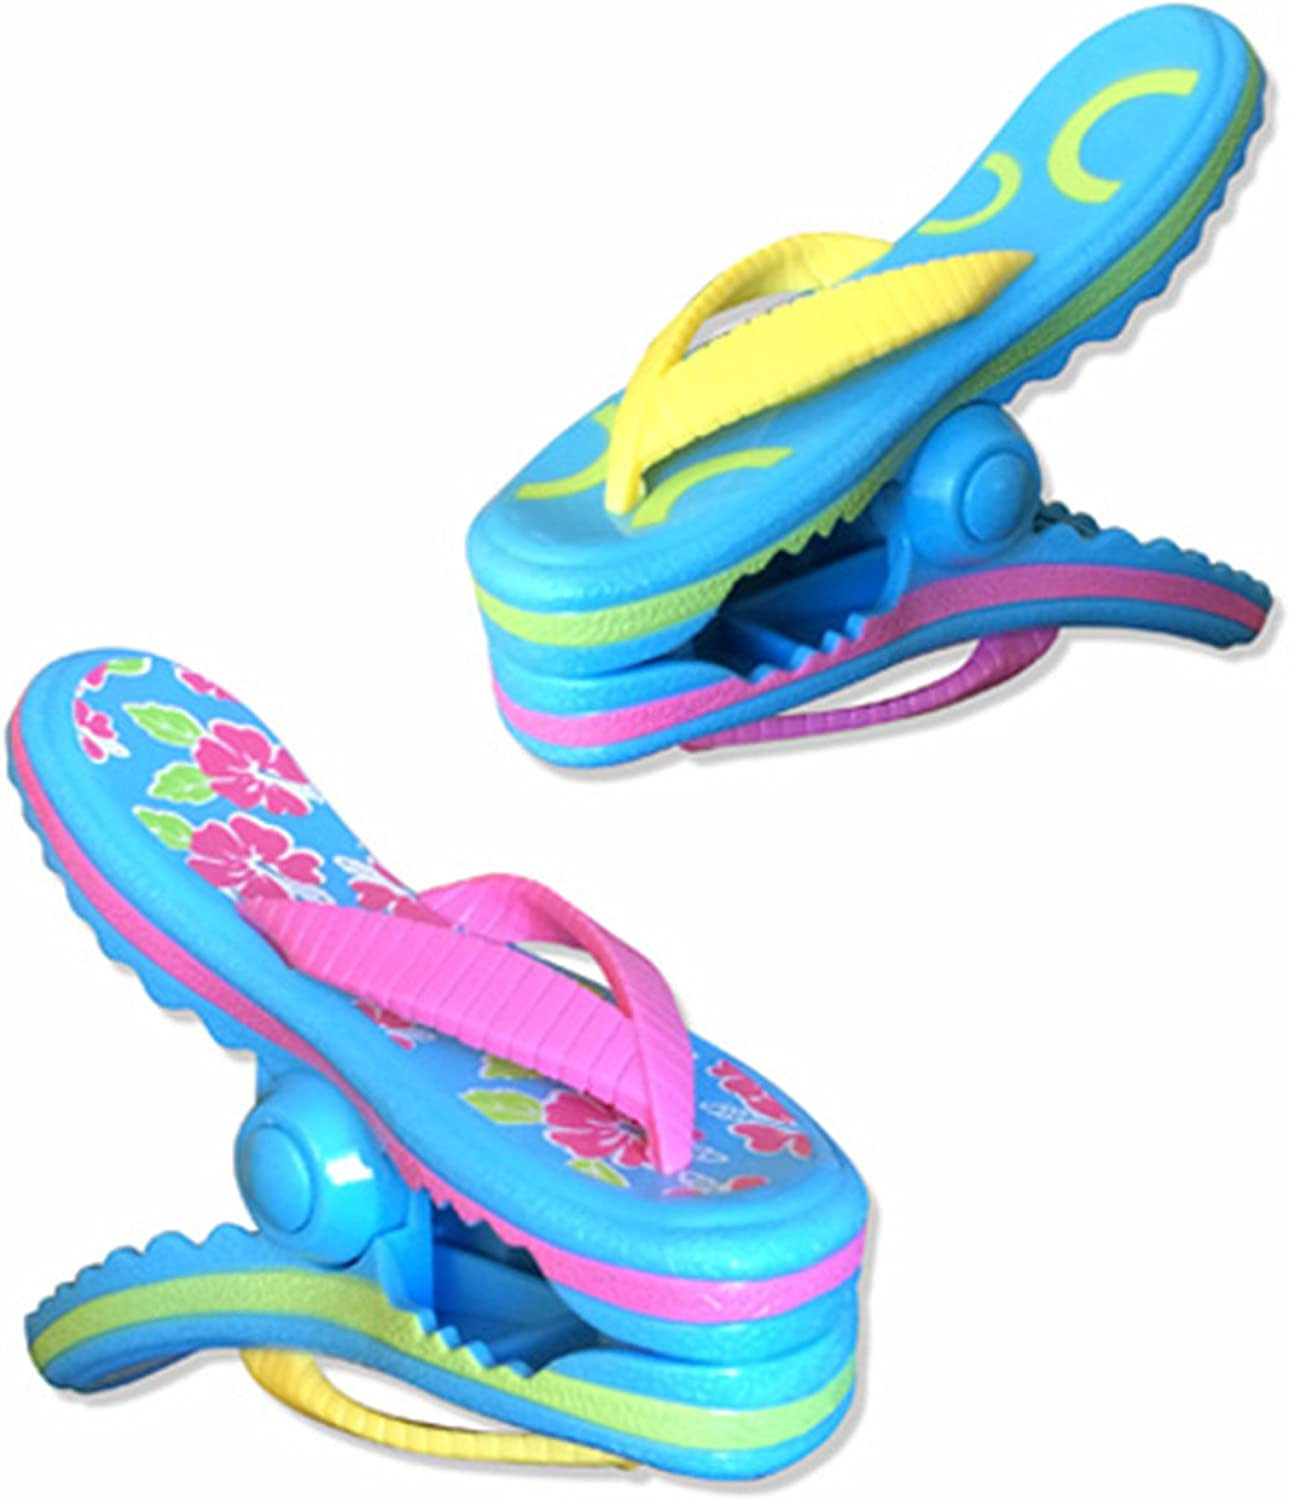 O2COOL Flip Flop BocaClips, Beach Towel Holders, Clips, Set of Two, Beach, Patio or Pool Accessories